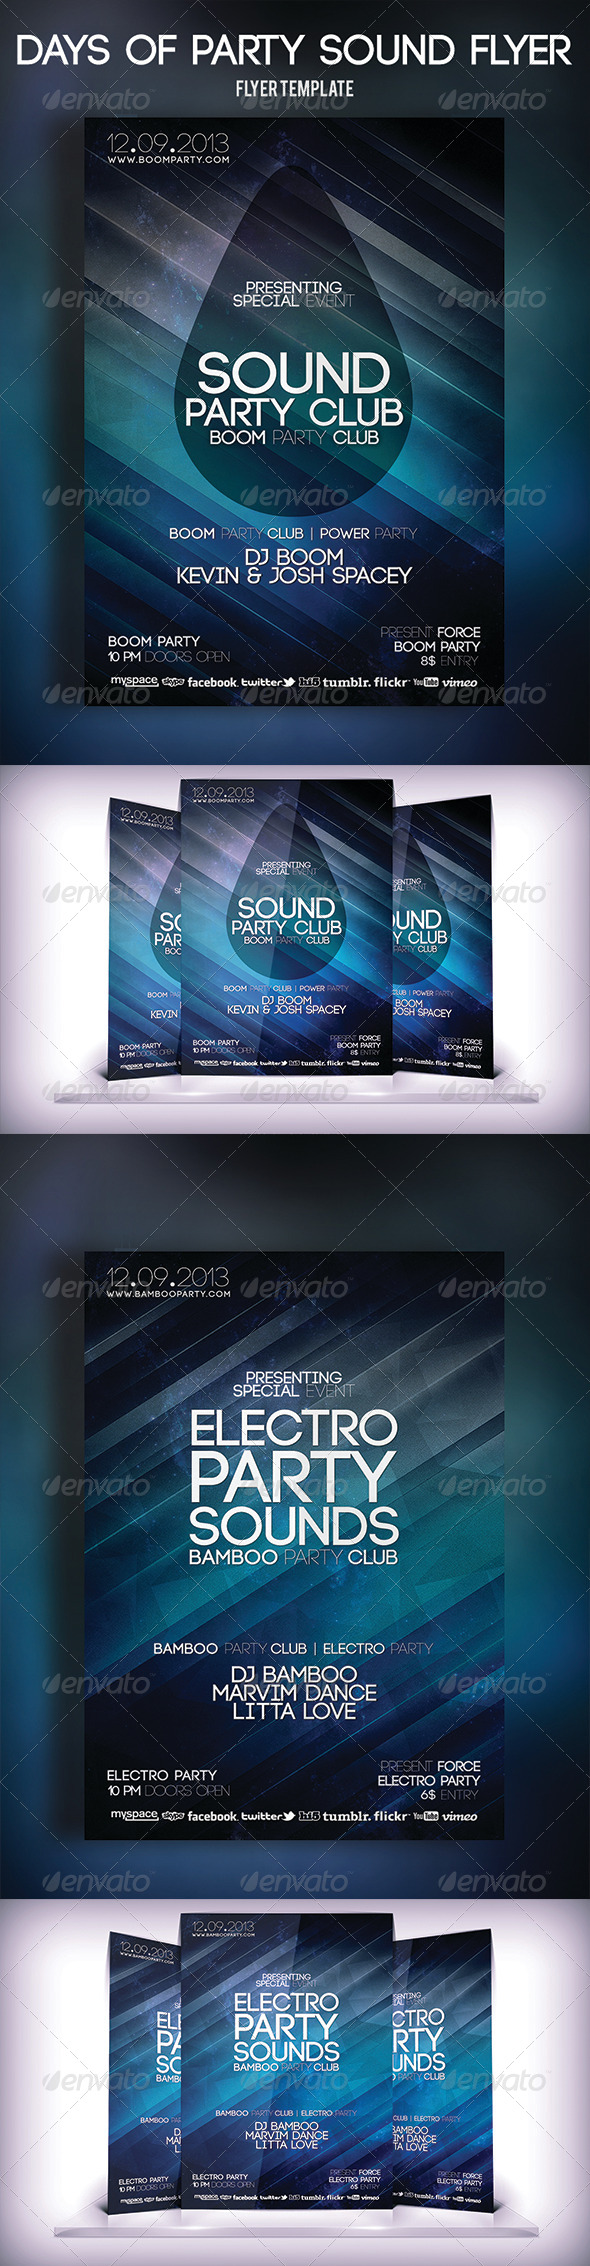 Days of Party Sound Flyer - Clubs & Parties Events